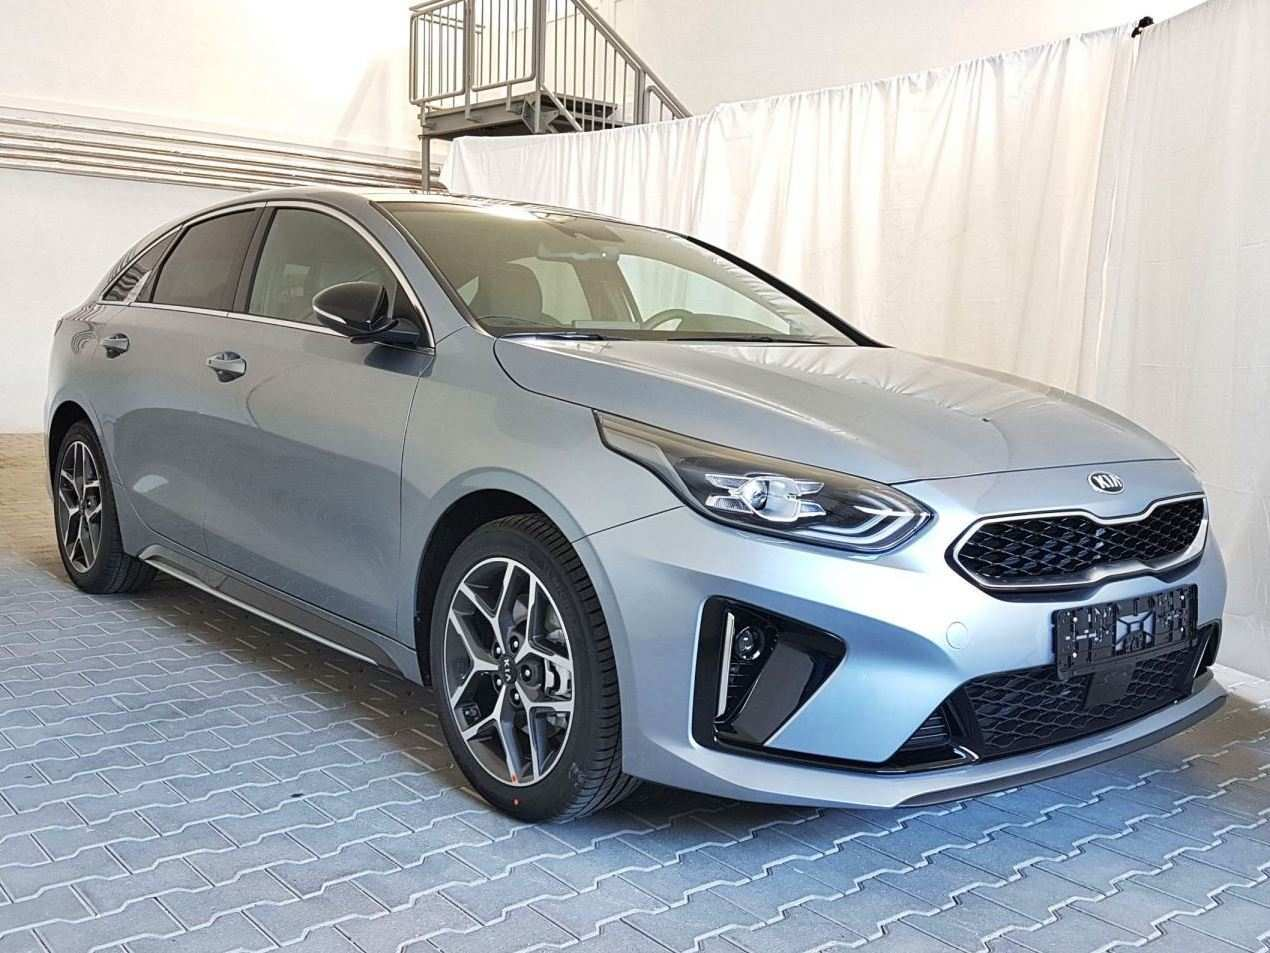 24 Best Kia Proceed 2020 Images